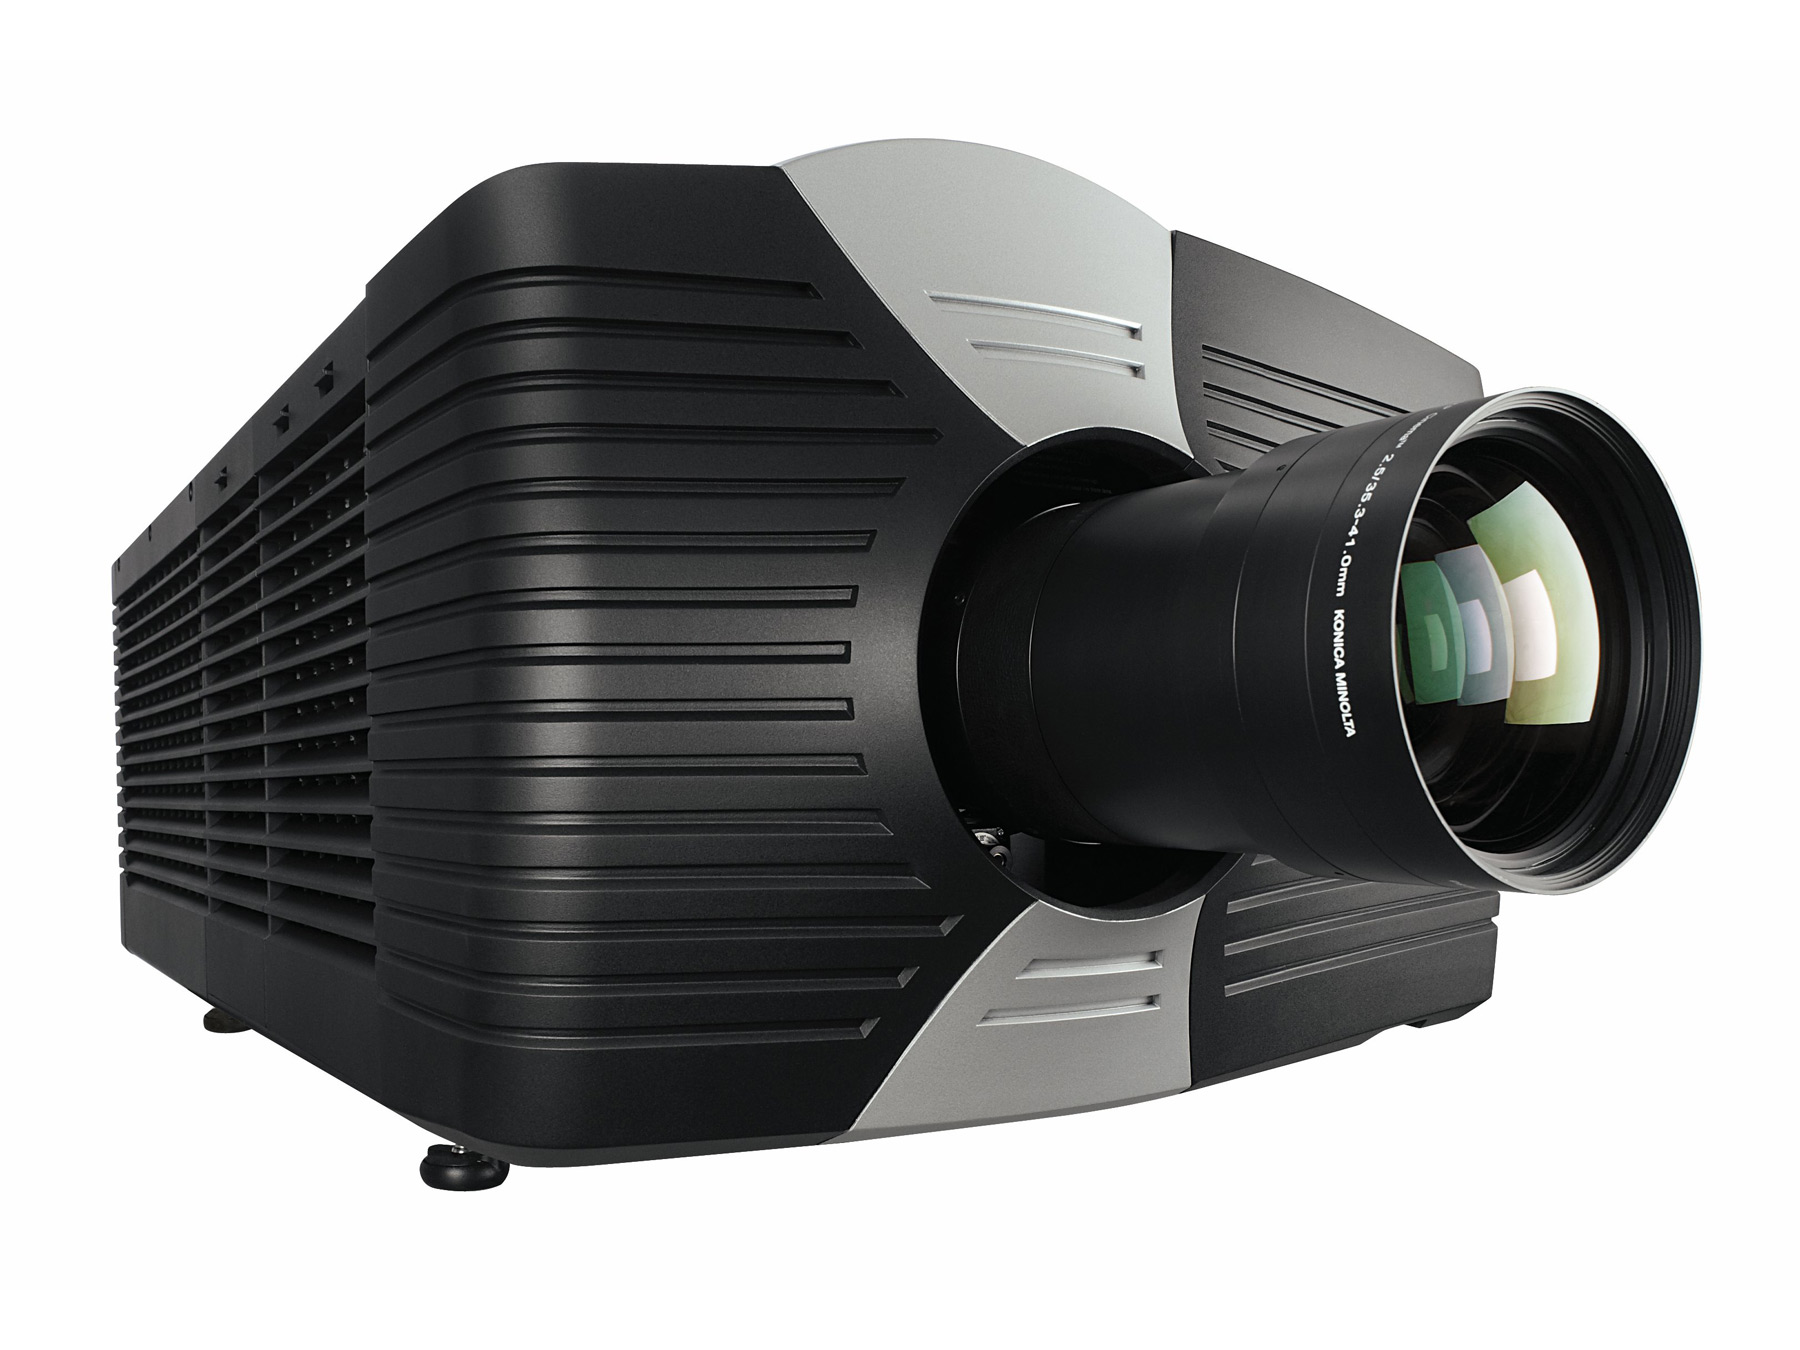 /globalassets/.catalog/products/images/christie-cp4230/gallery/digital-cinema-projector-4k-image-8.jpg